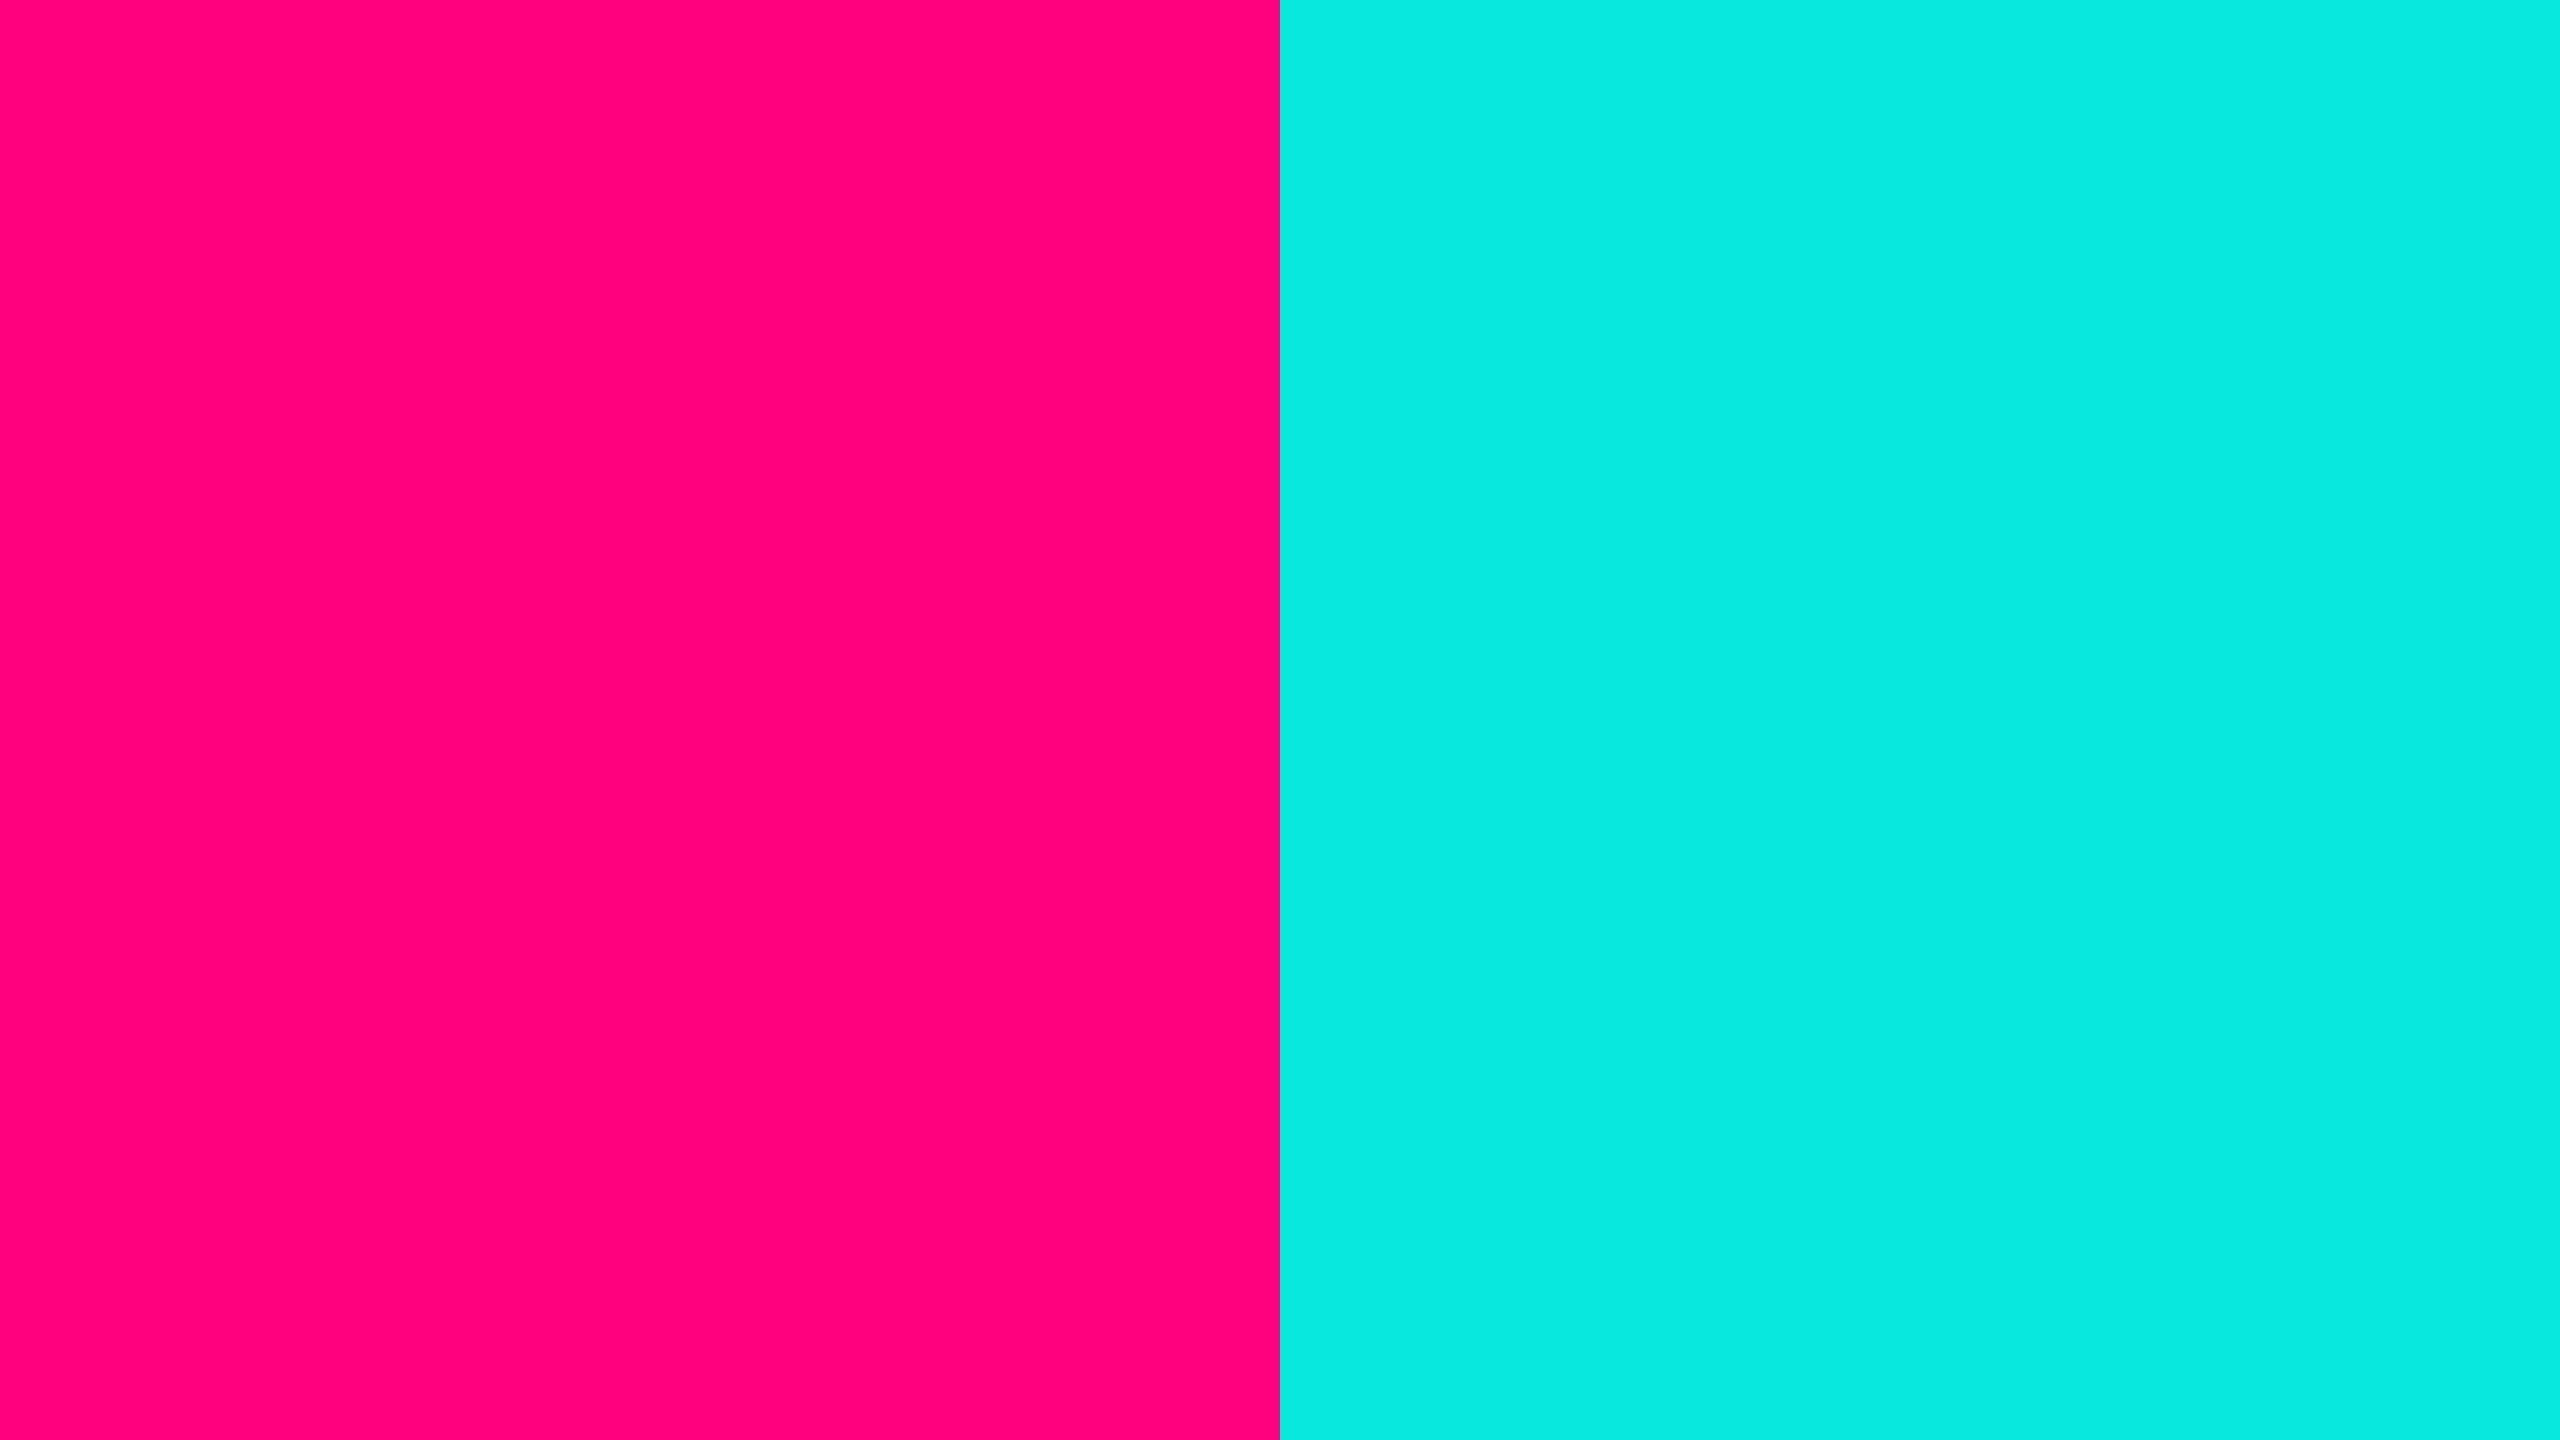 Download Image Turquoise And Pink Neon Wallpaper Pc Android Iphone And Pink And Turquoise Wallpaper Turquoise Wallpaper Iphone Wallpaper Blur